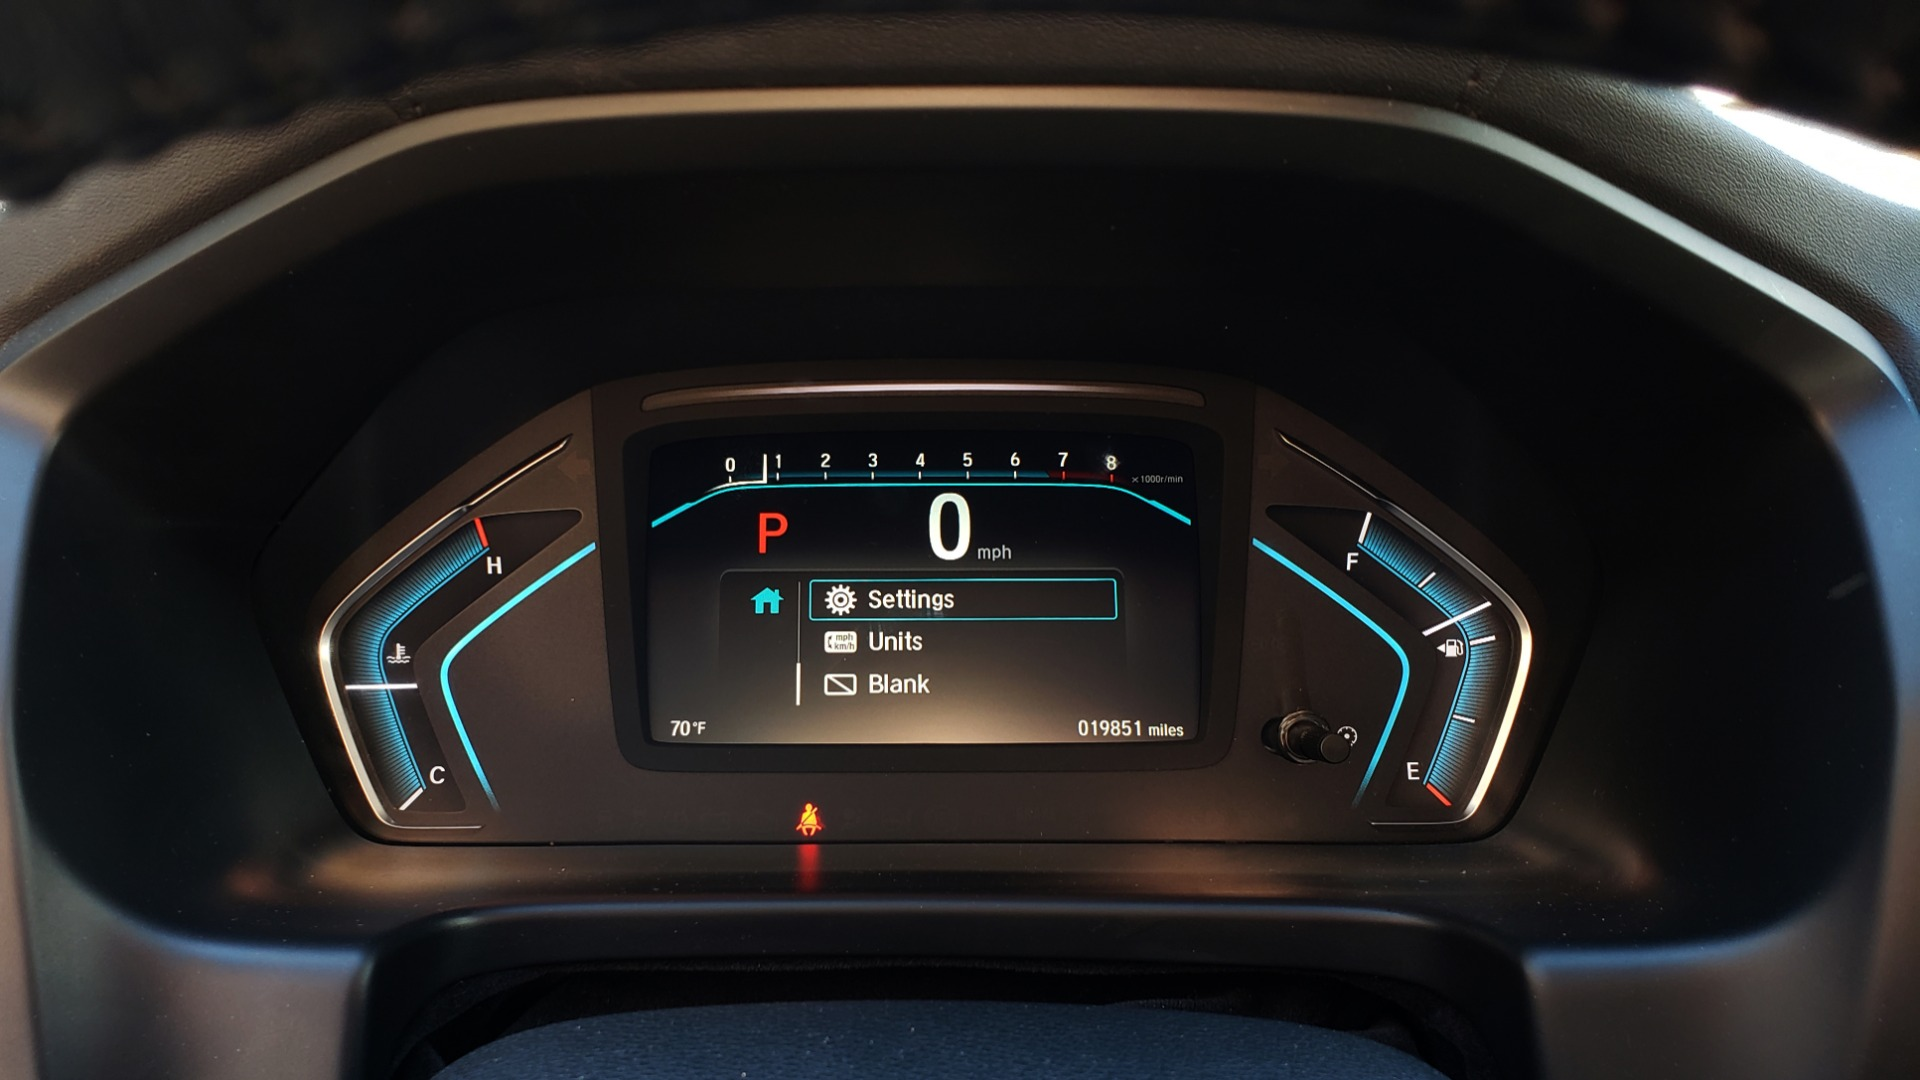 Used 2019 Honda ODYSSEY EX-L BRAUNABILITY / NAV / RES / LKA / BLUE-RAY / SUNROOF / REARVIEW for sale Sold at Formula Imports in Charlotte NC 28227 21